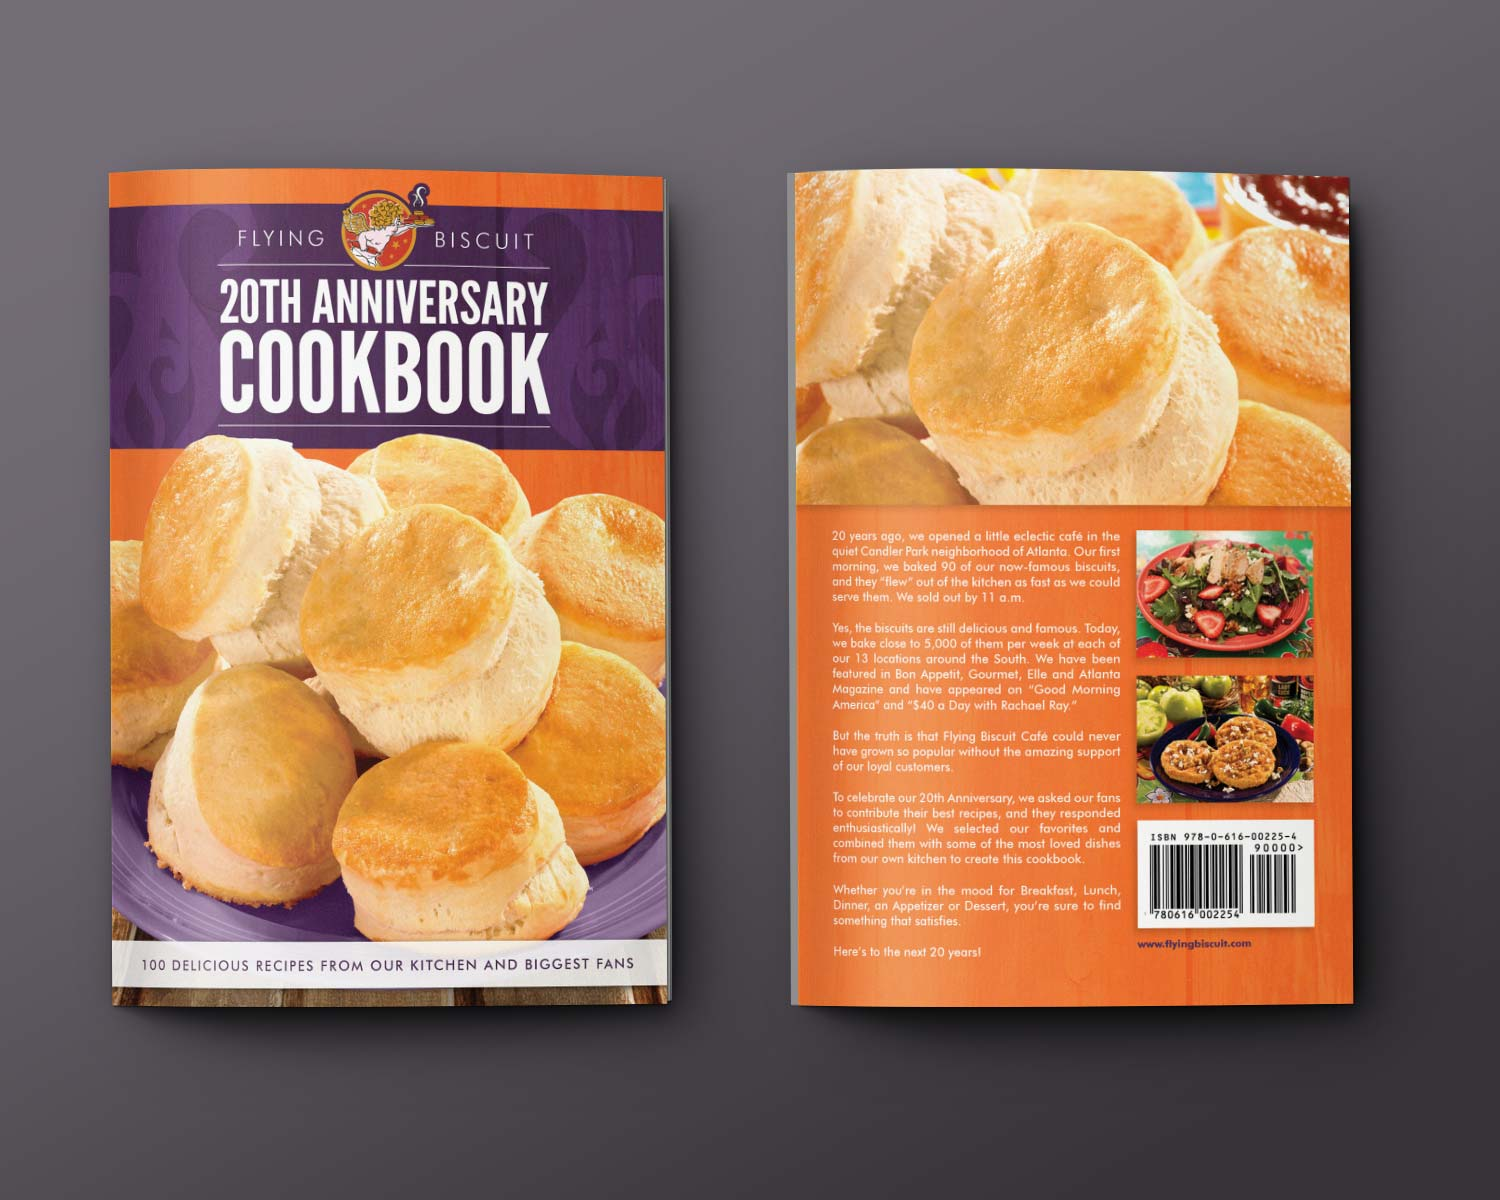 flying-biscuit-cookbook-covers